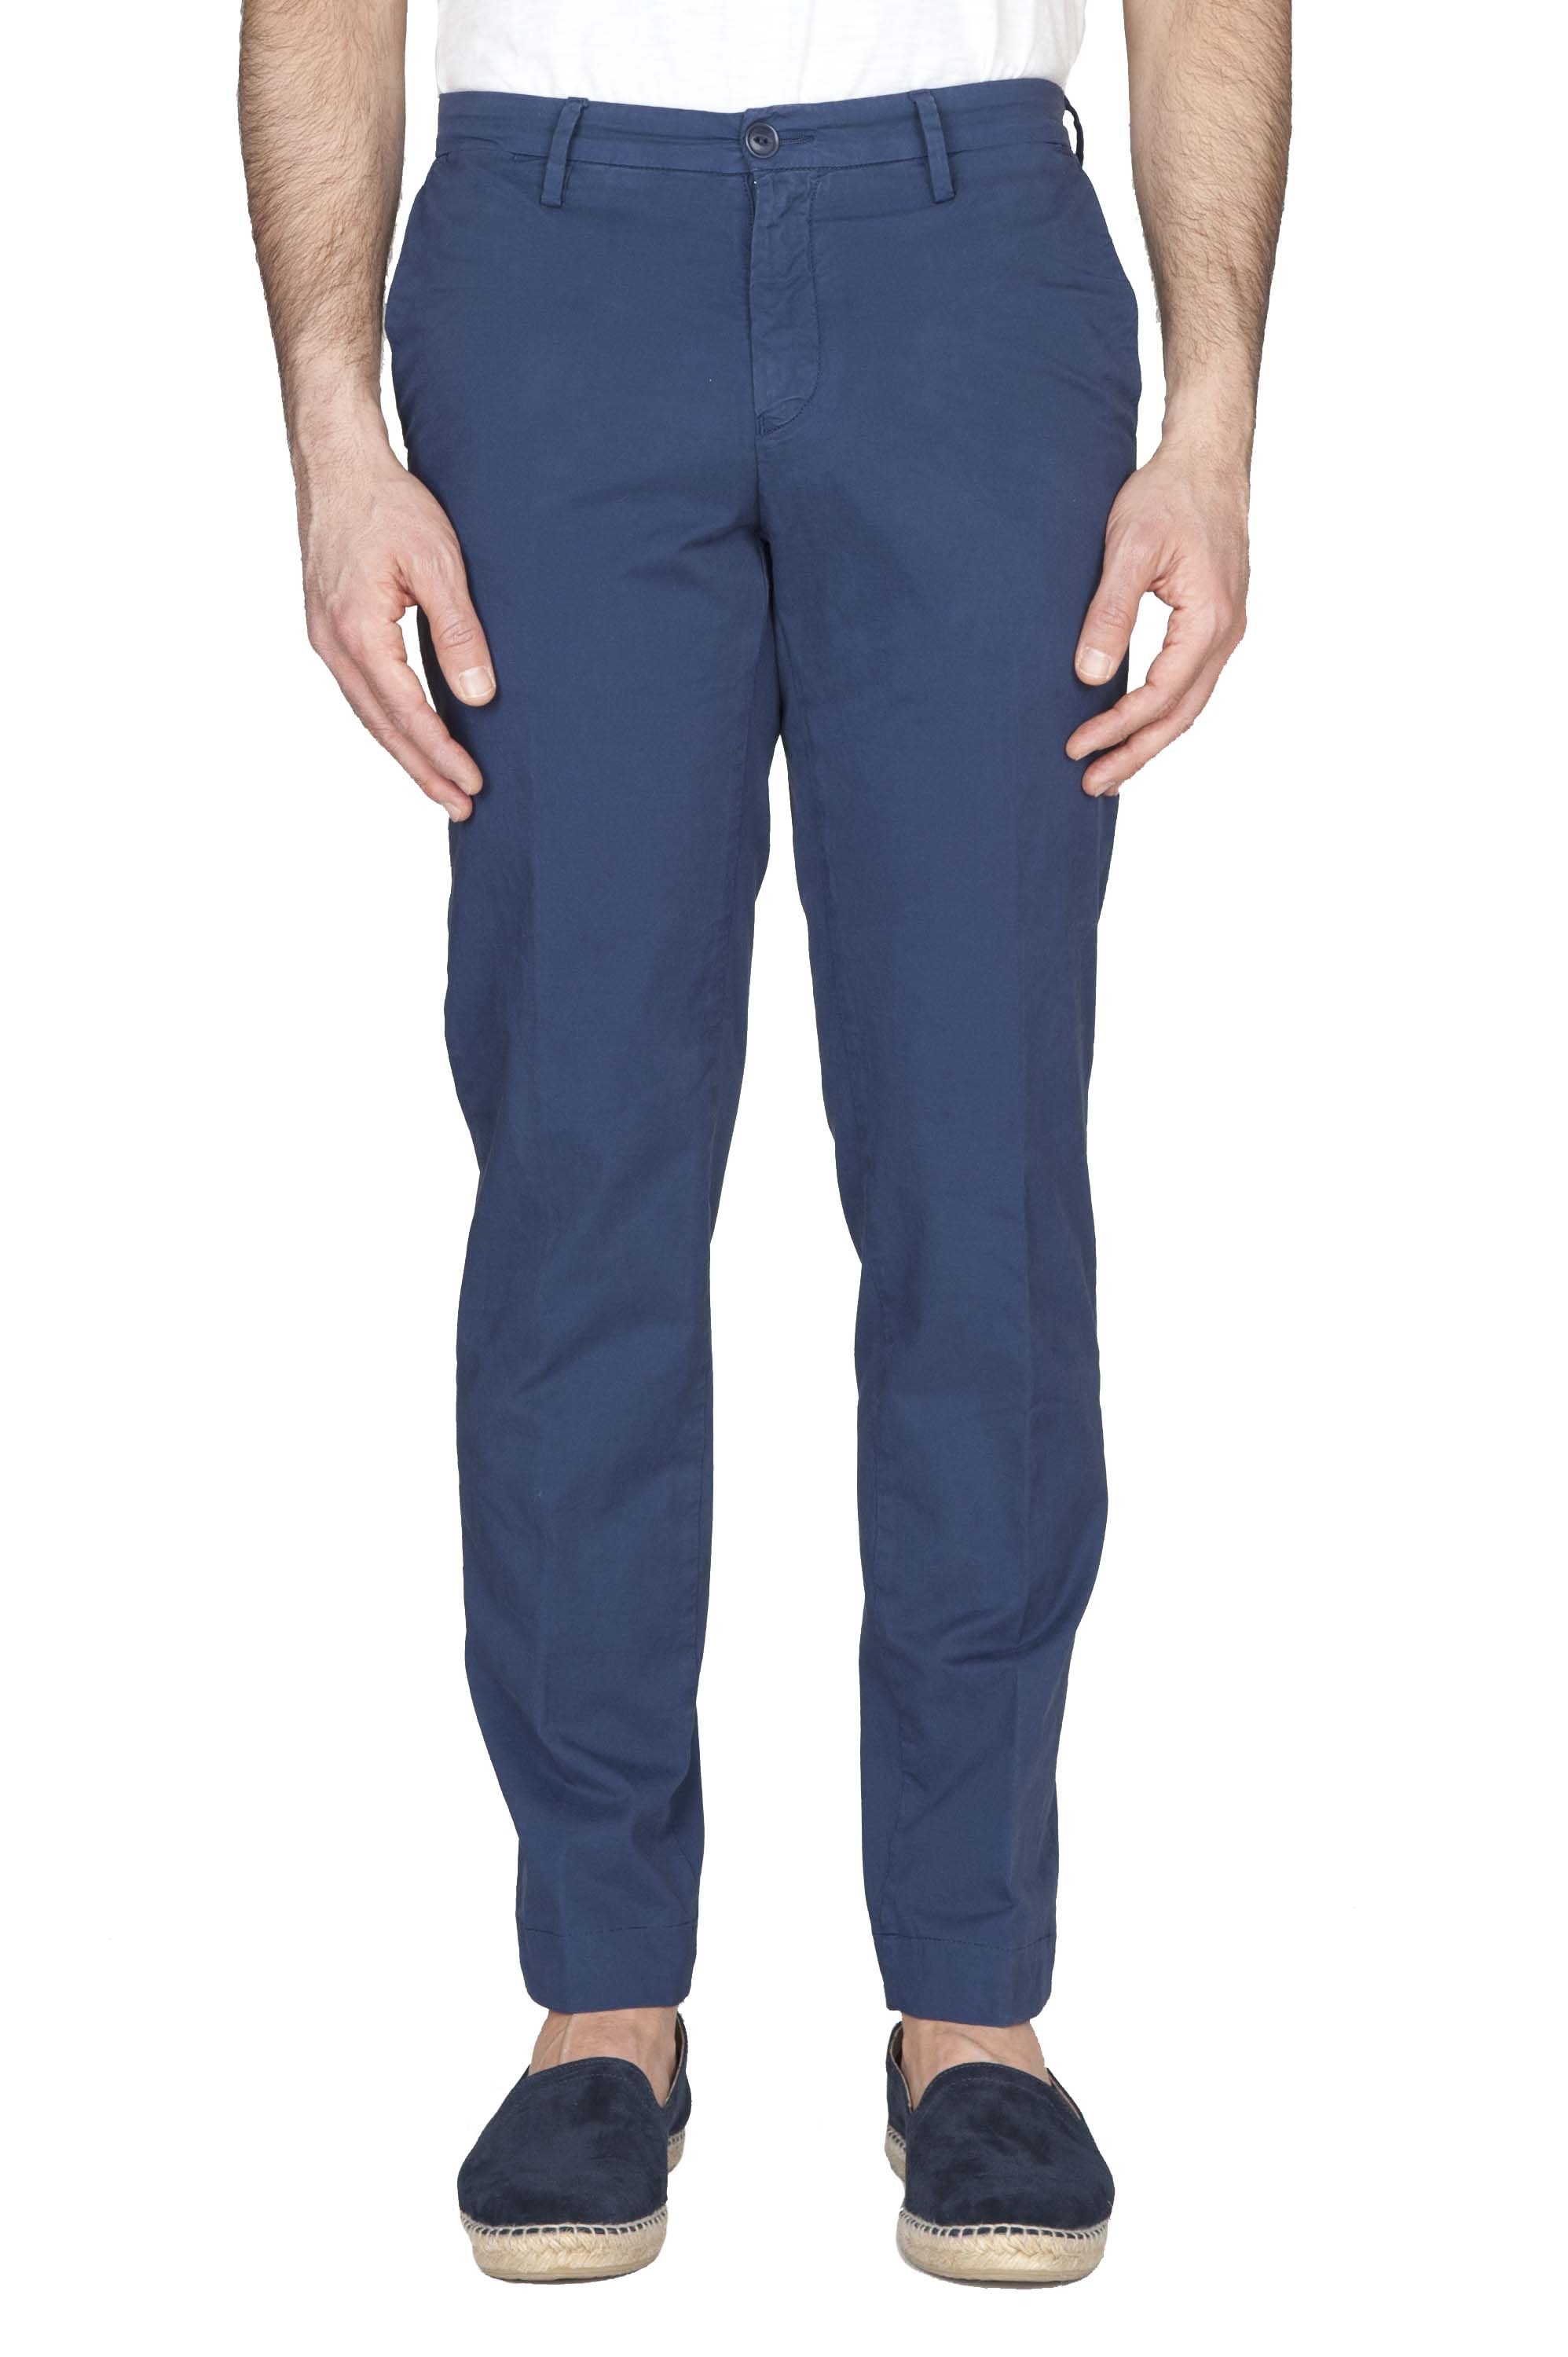 SBU 01140 Classic slim fit chino pant 01